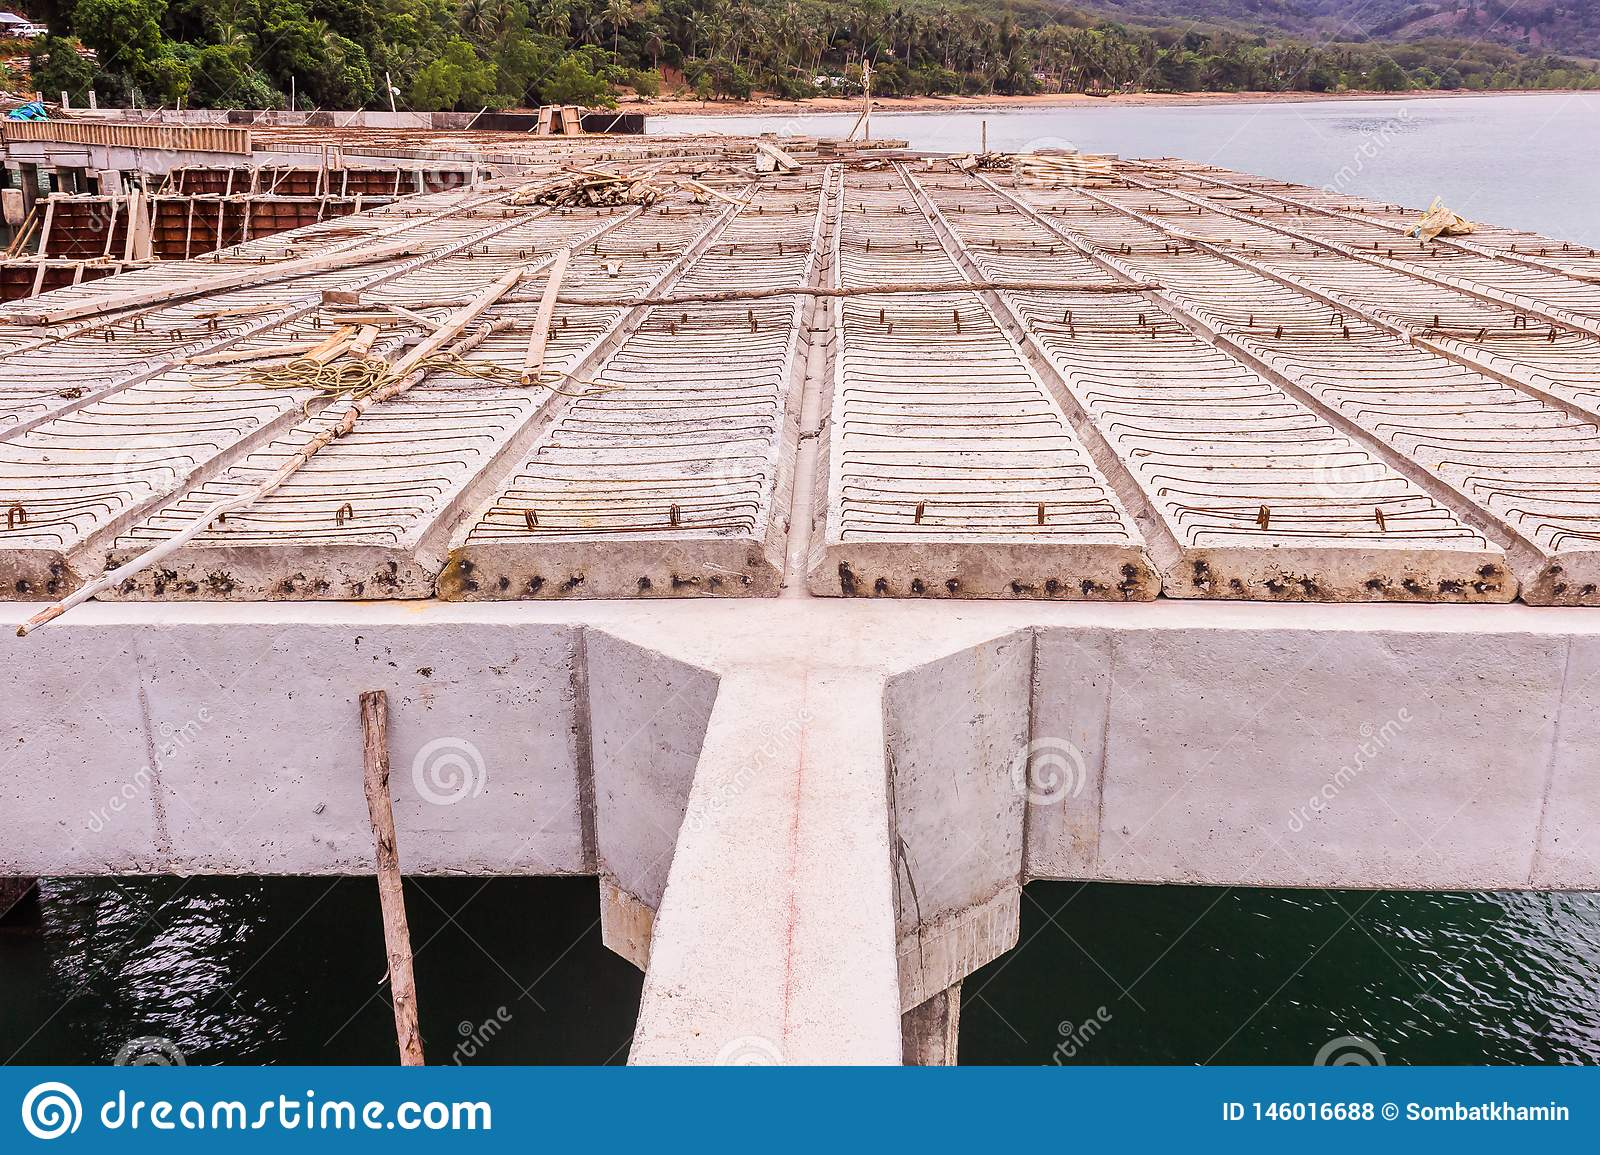 Reinforce Concrete Beams And Precast Slabs Of Under Construction Pier Stock Photo Image Of Construction Design 146016688